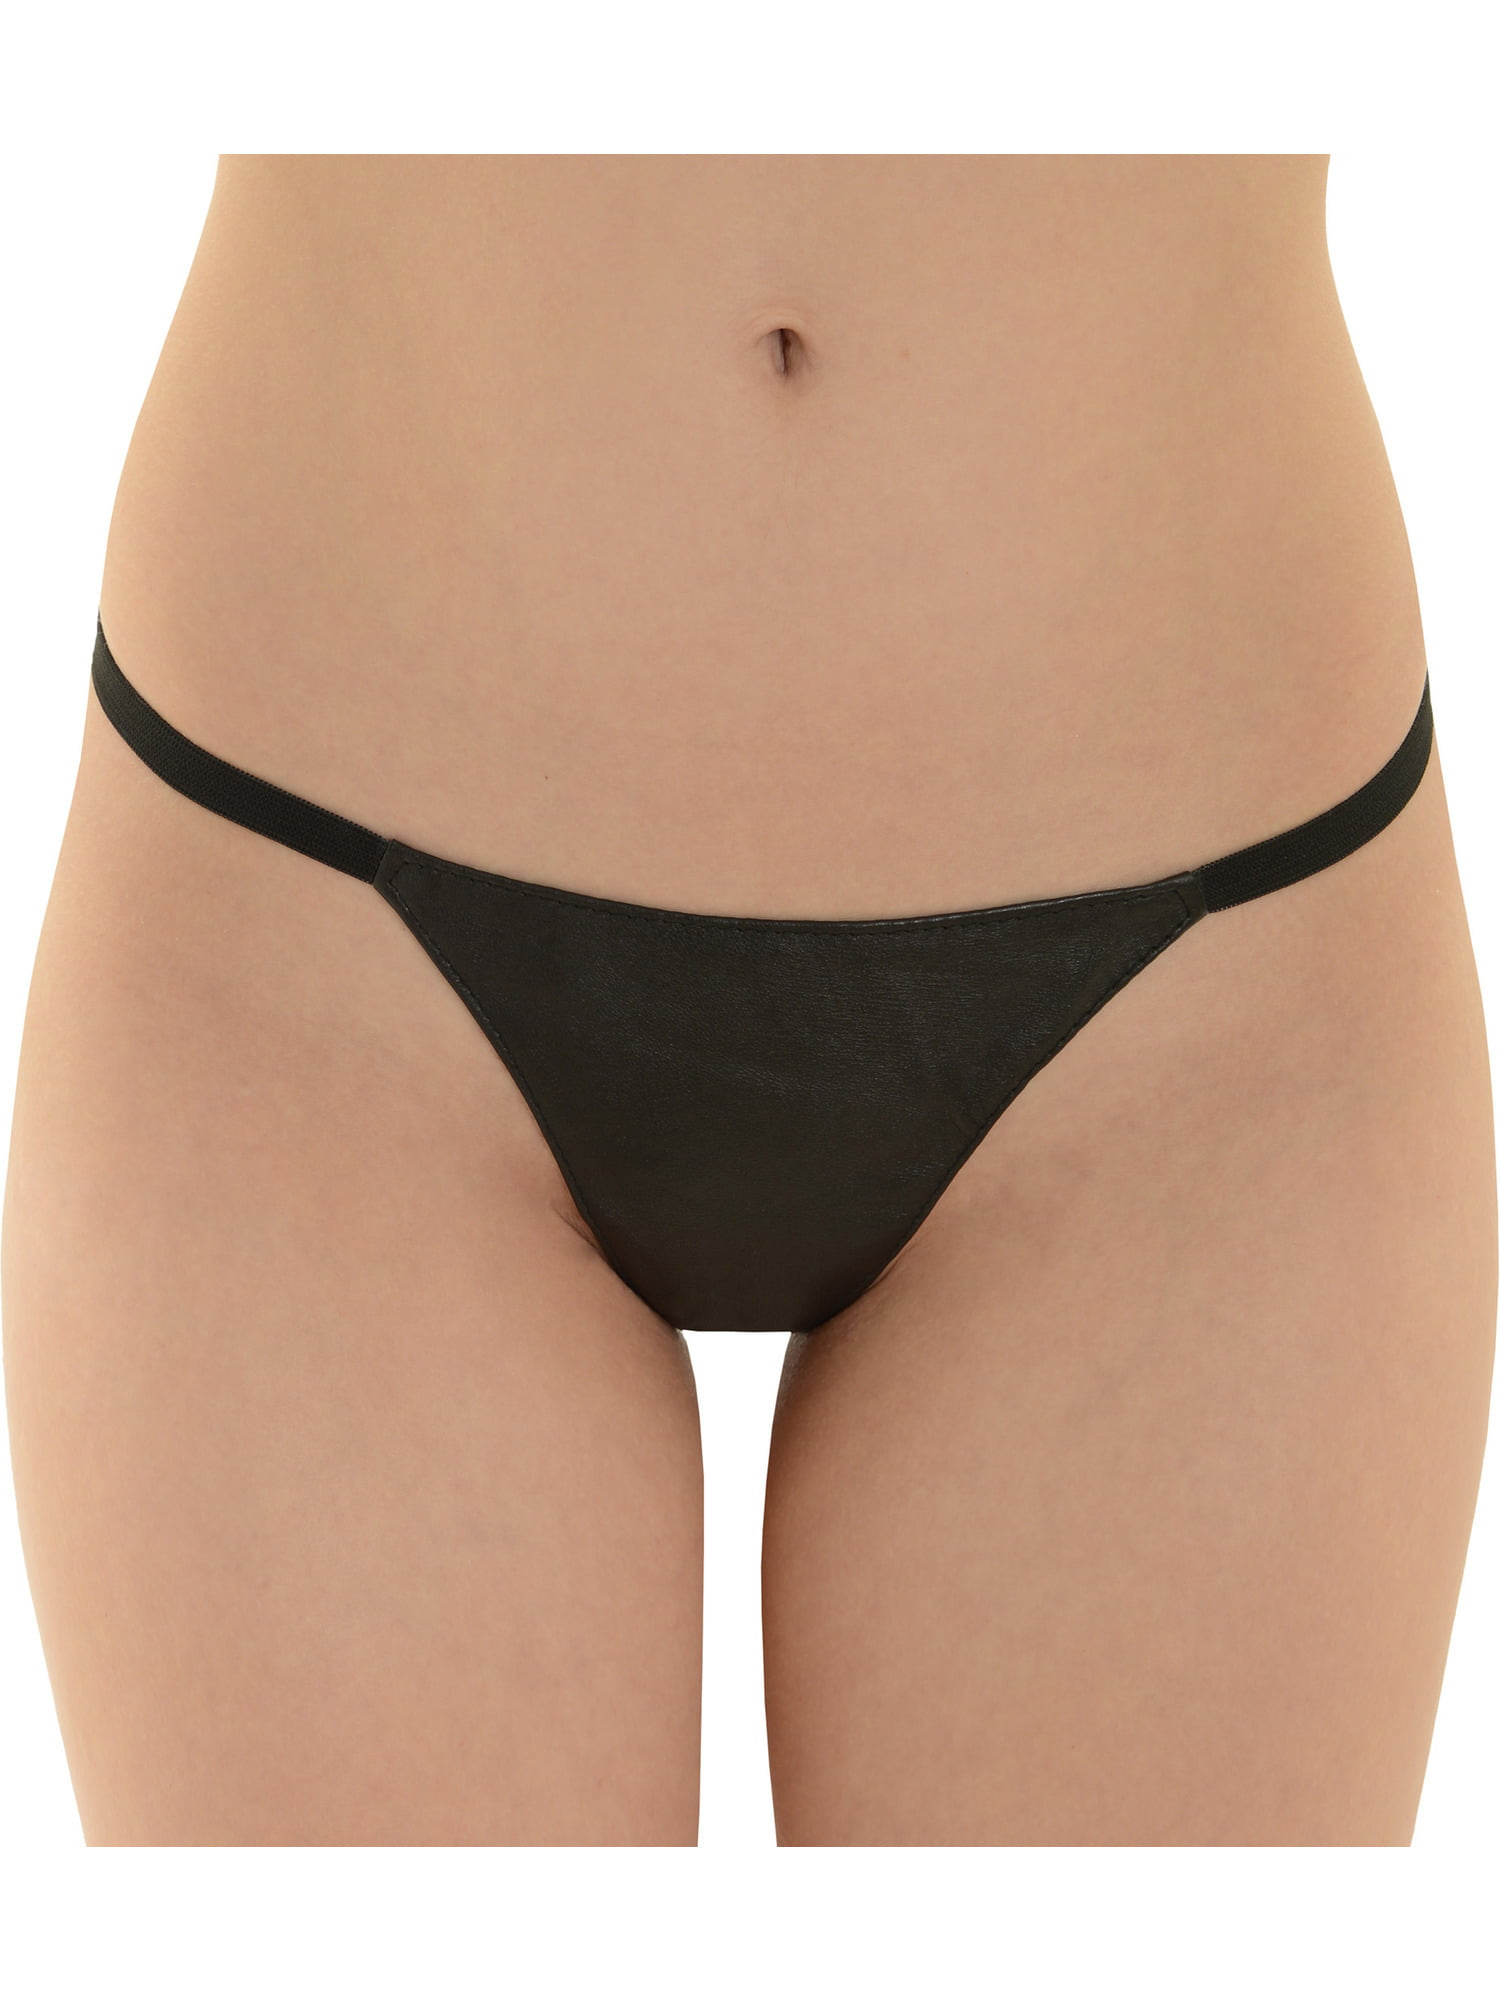 Womens Black Leather g-String Panty Underwear 1 Size Sexy Fetish Thong Gift